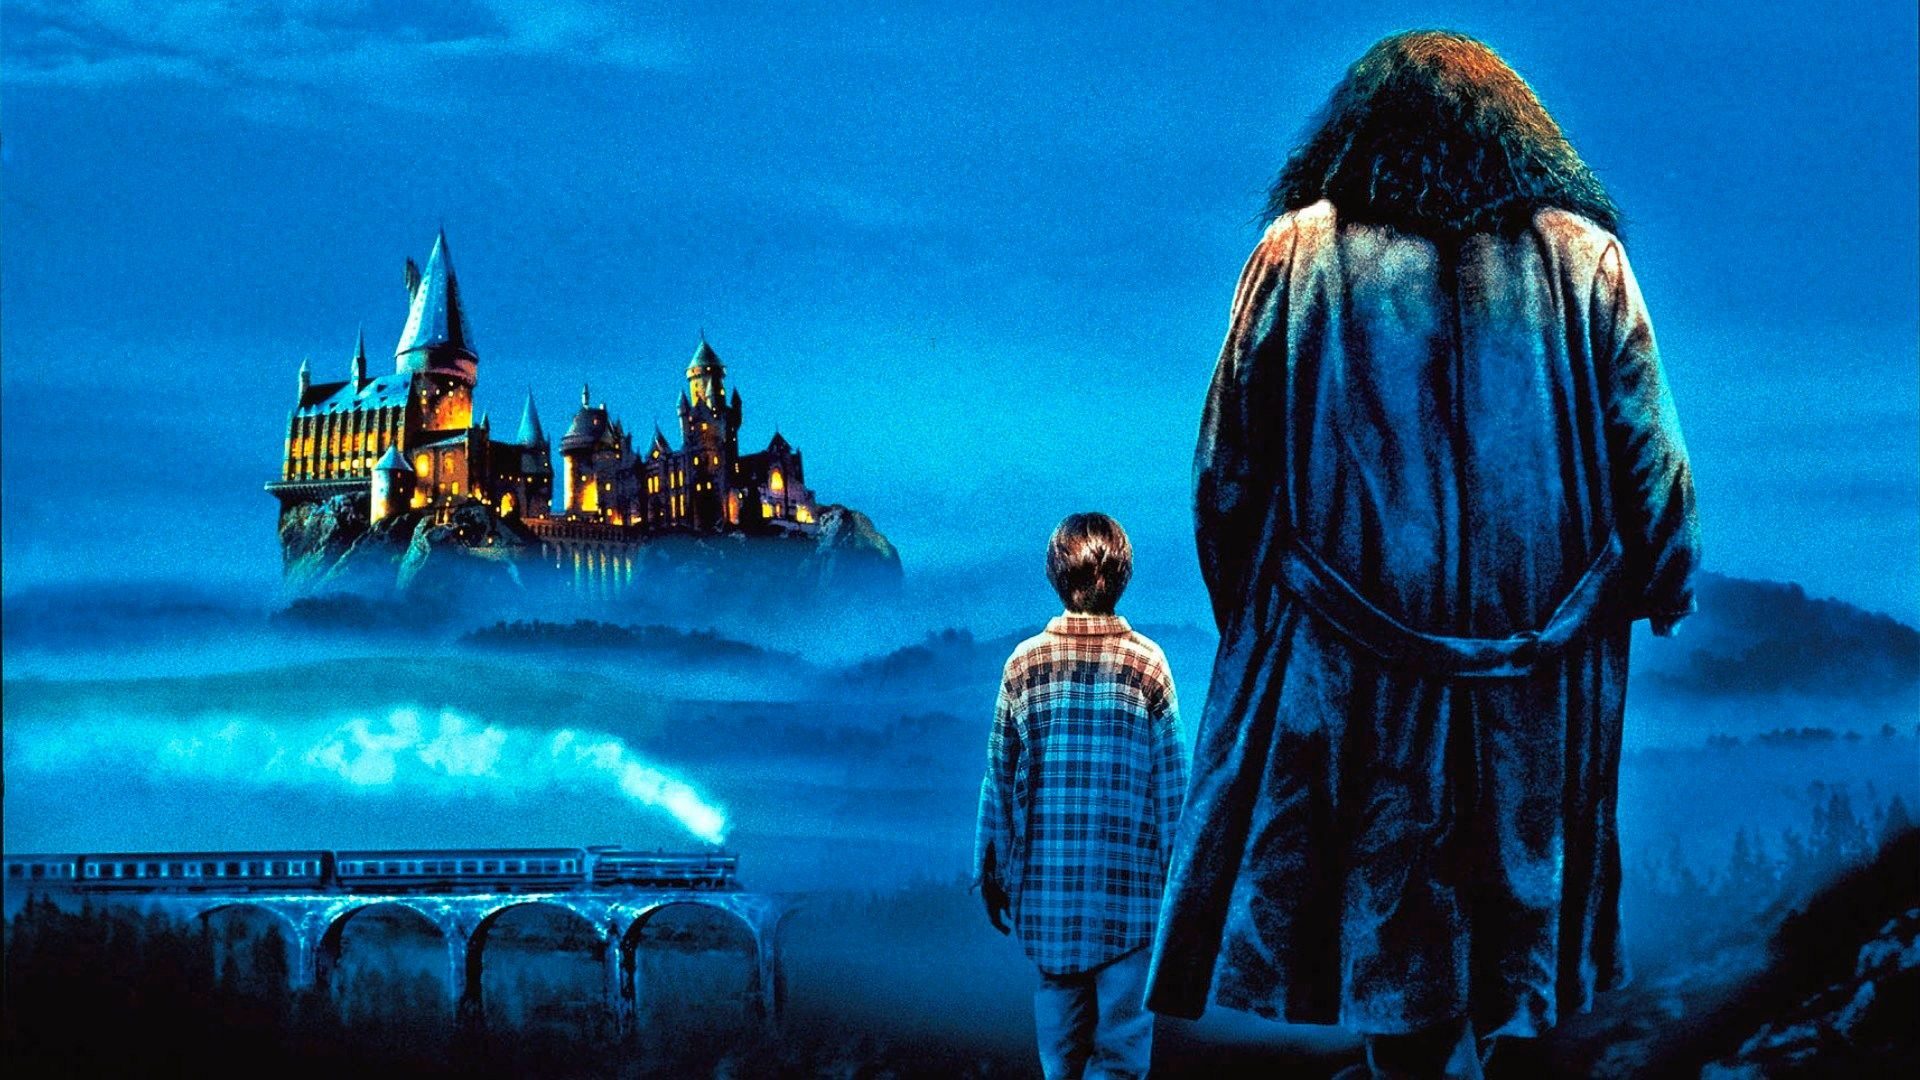 Harry Potter Free Computer Wallpaper Harry Potter Wallpaper Harry Potter Free Harry Potter Wallpaper Backgrounds